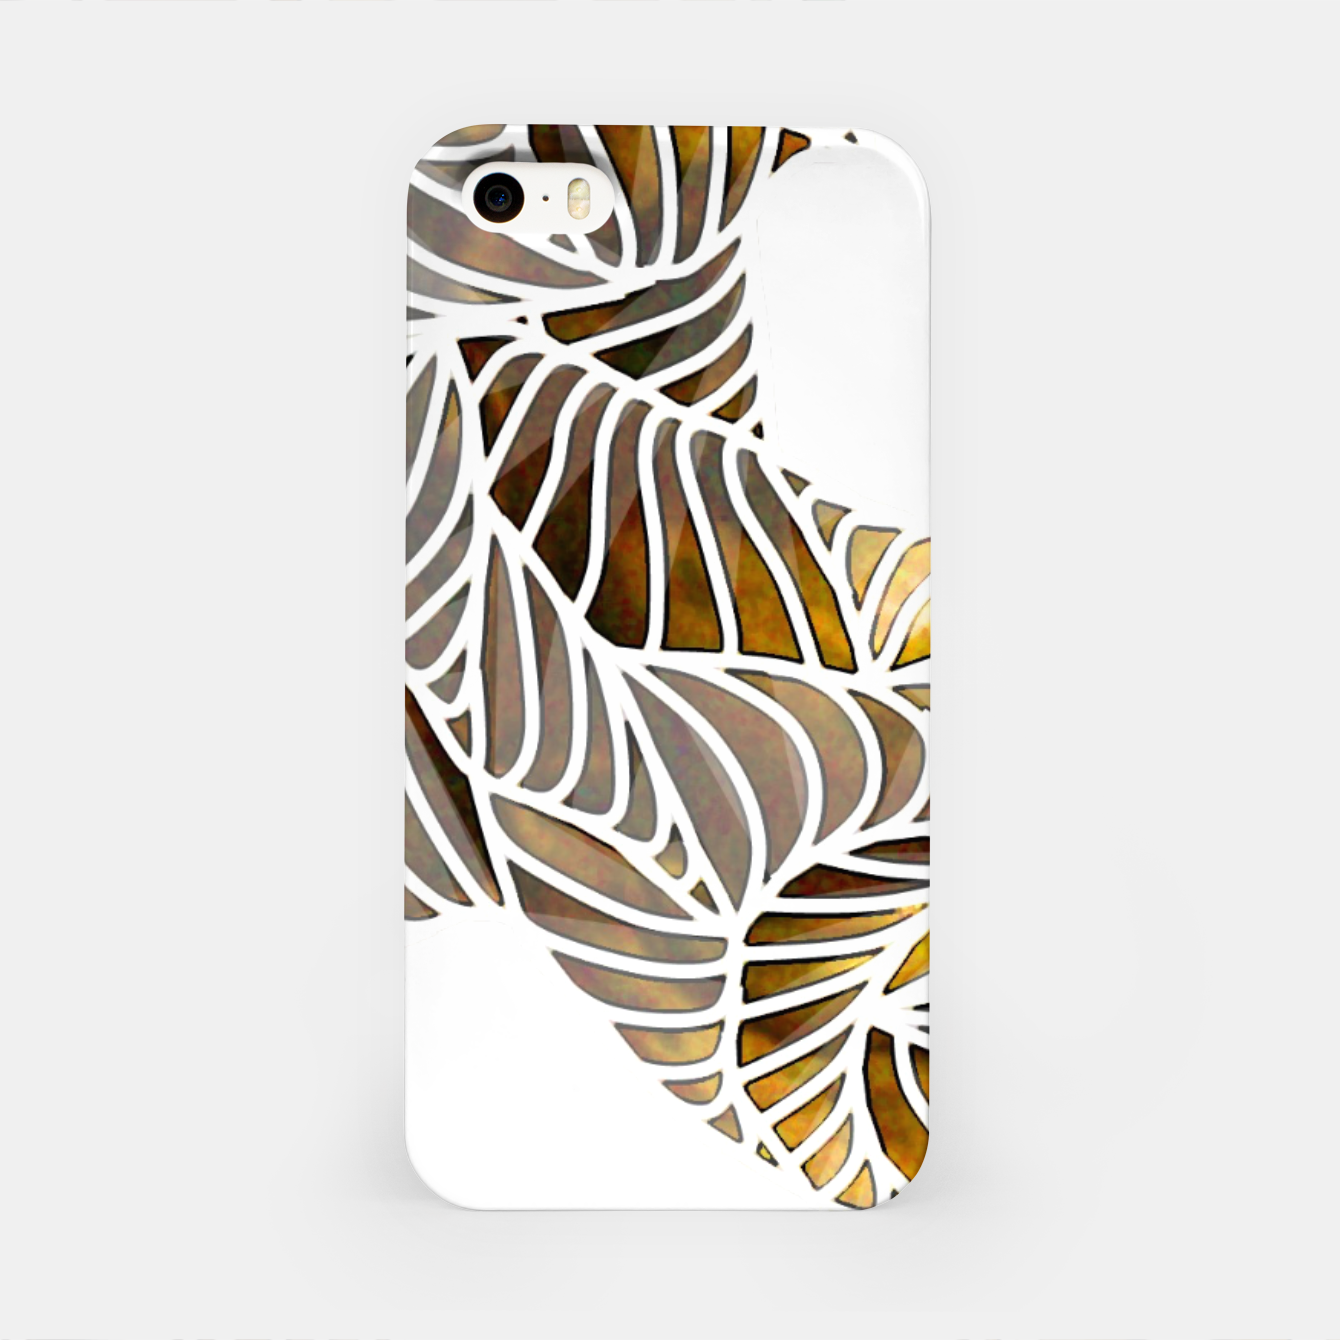 Image of Ub iPhone Case - Live Heroes